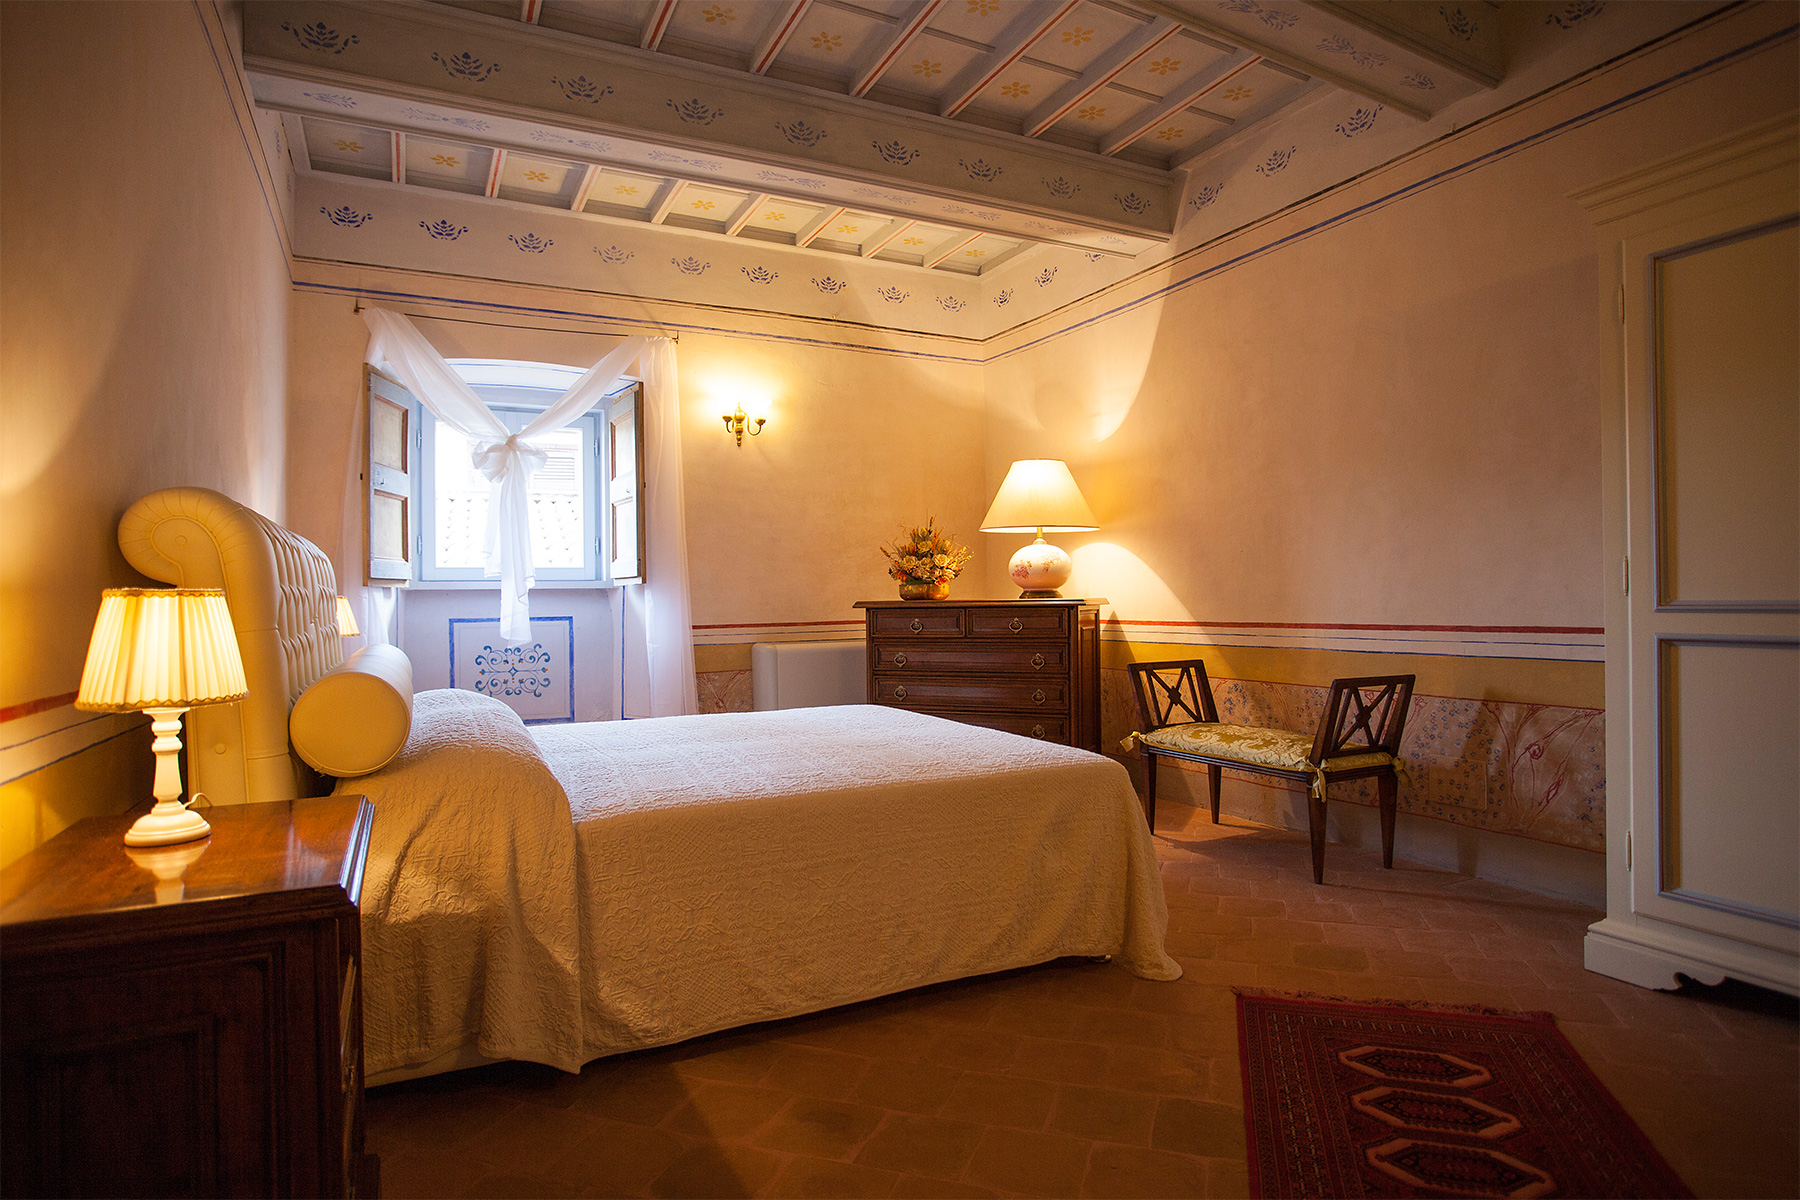 Additional photo for property listing at Wonderful renovated historic building Norcia Perugia, Perugia 06047 Italia